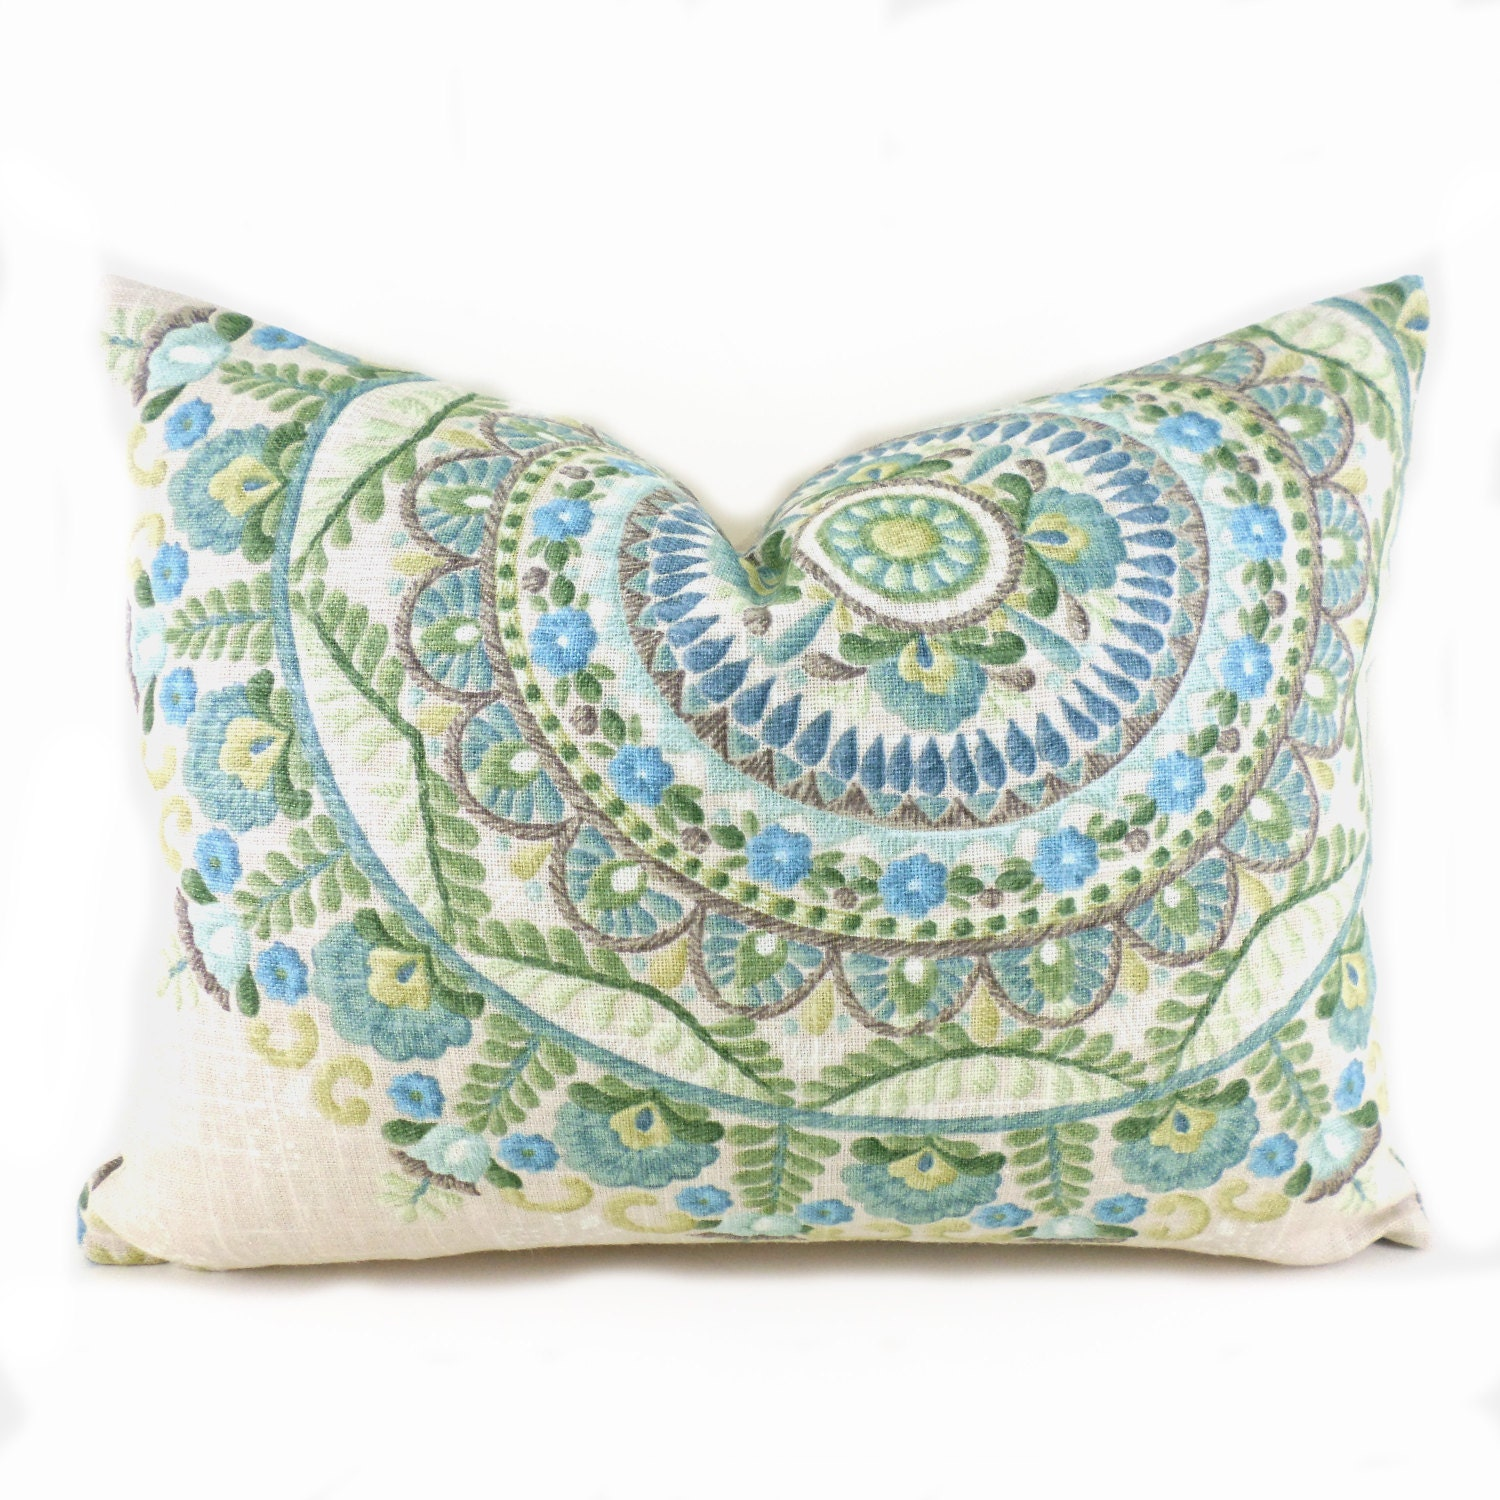 Lumbar pillow decorative pillow cover pillows home decor - Decorative throw pillows ...